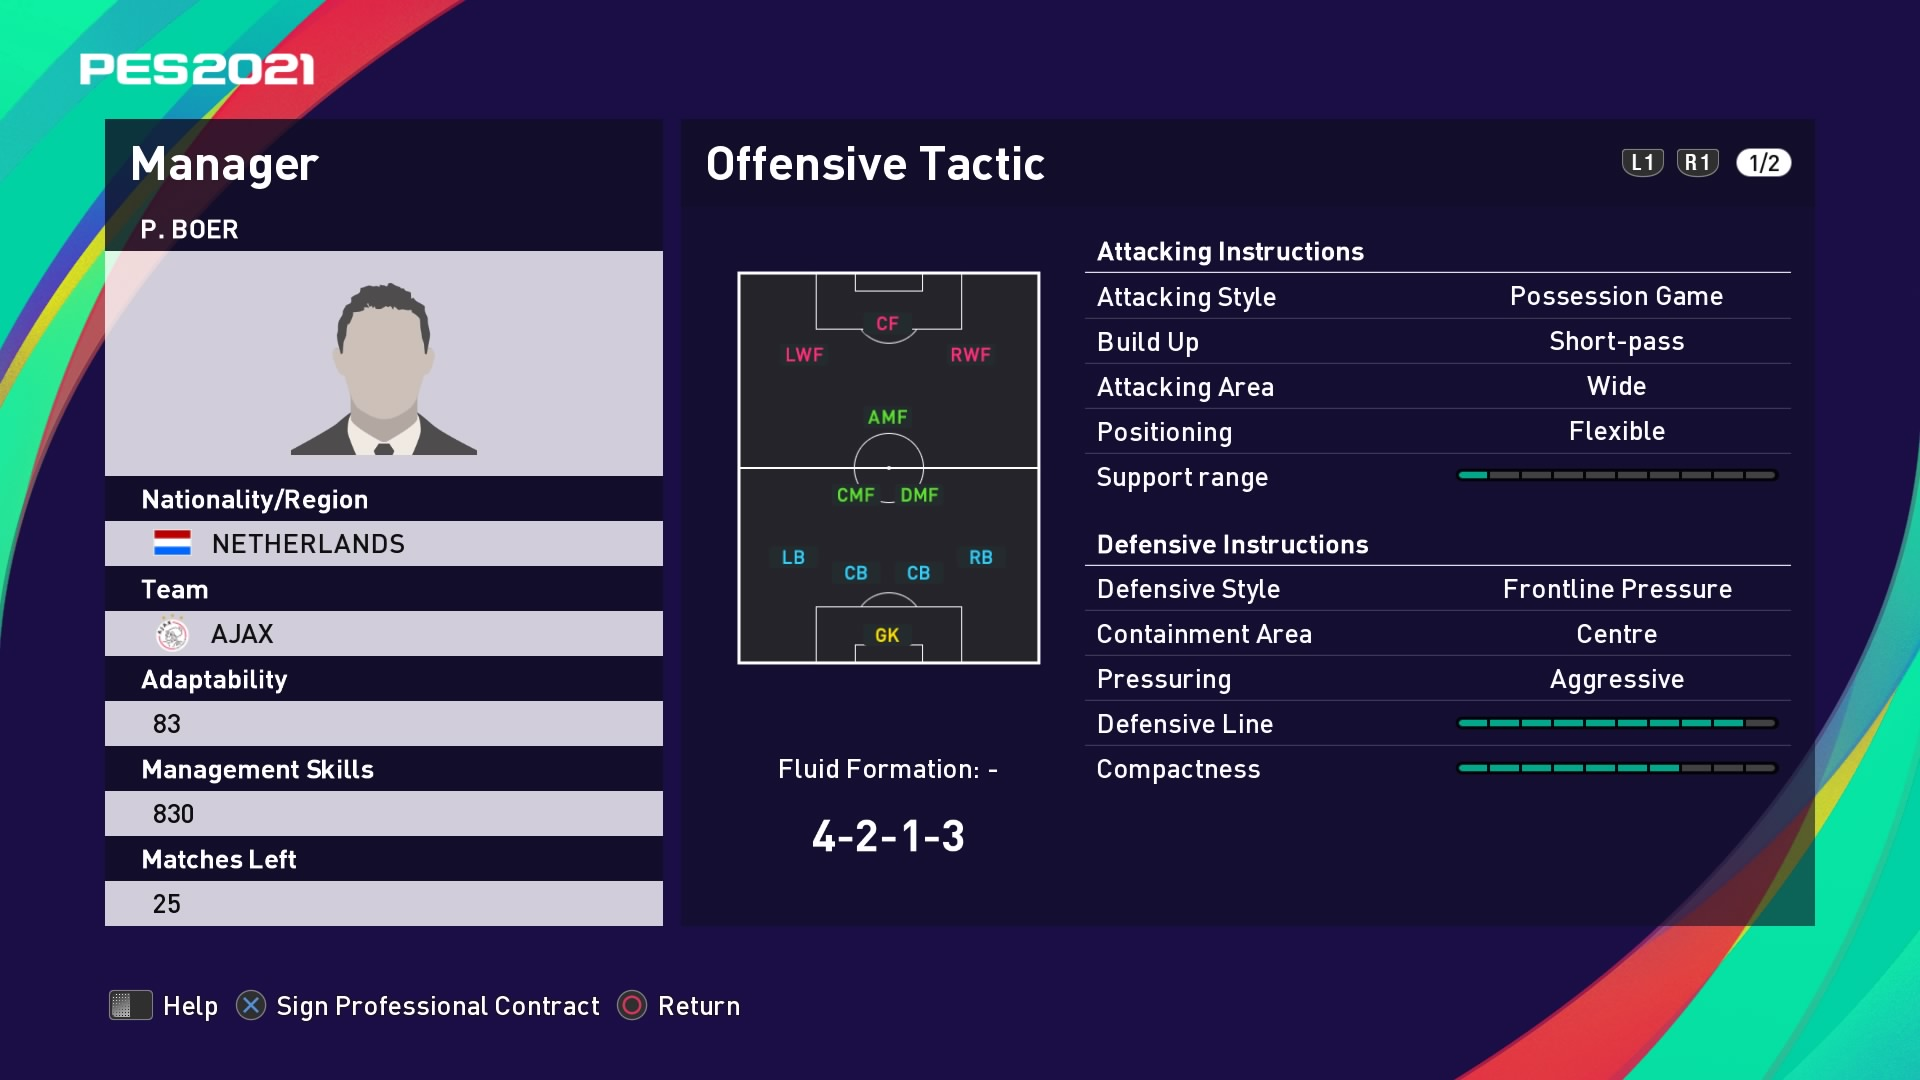 P. Boer (Erik ten Hag) Offensive Tactic in PES 2021 myClub